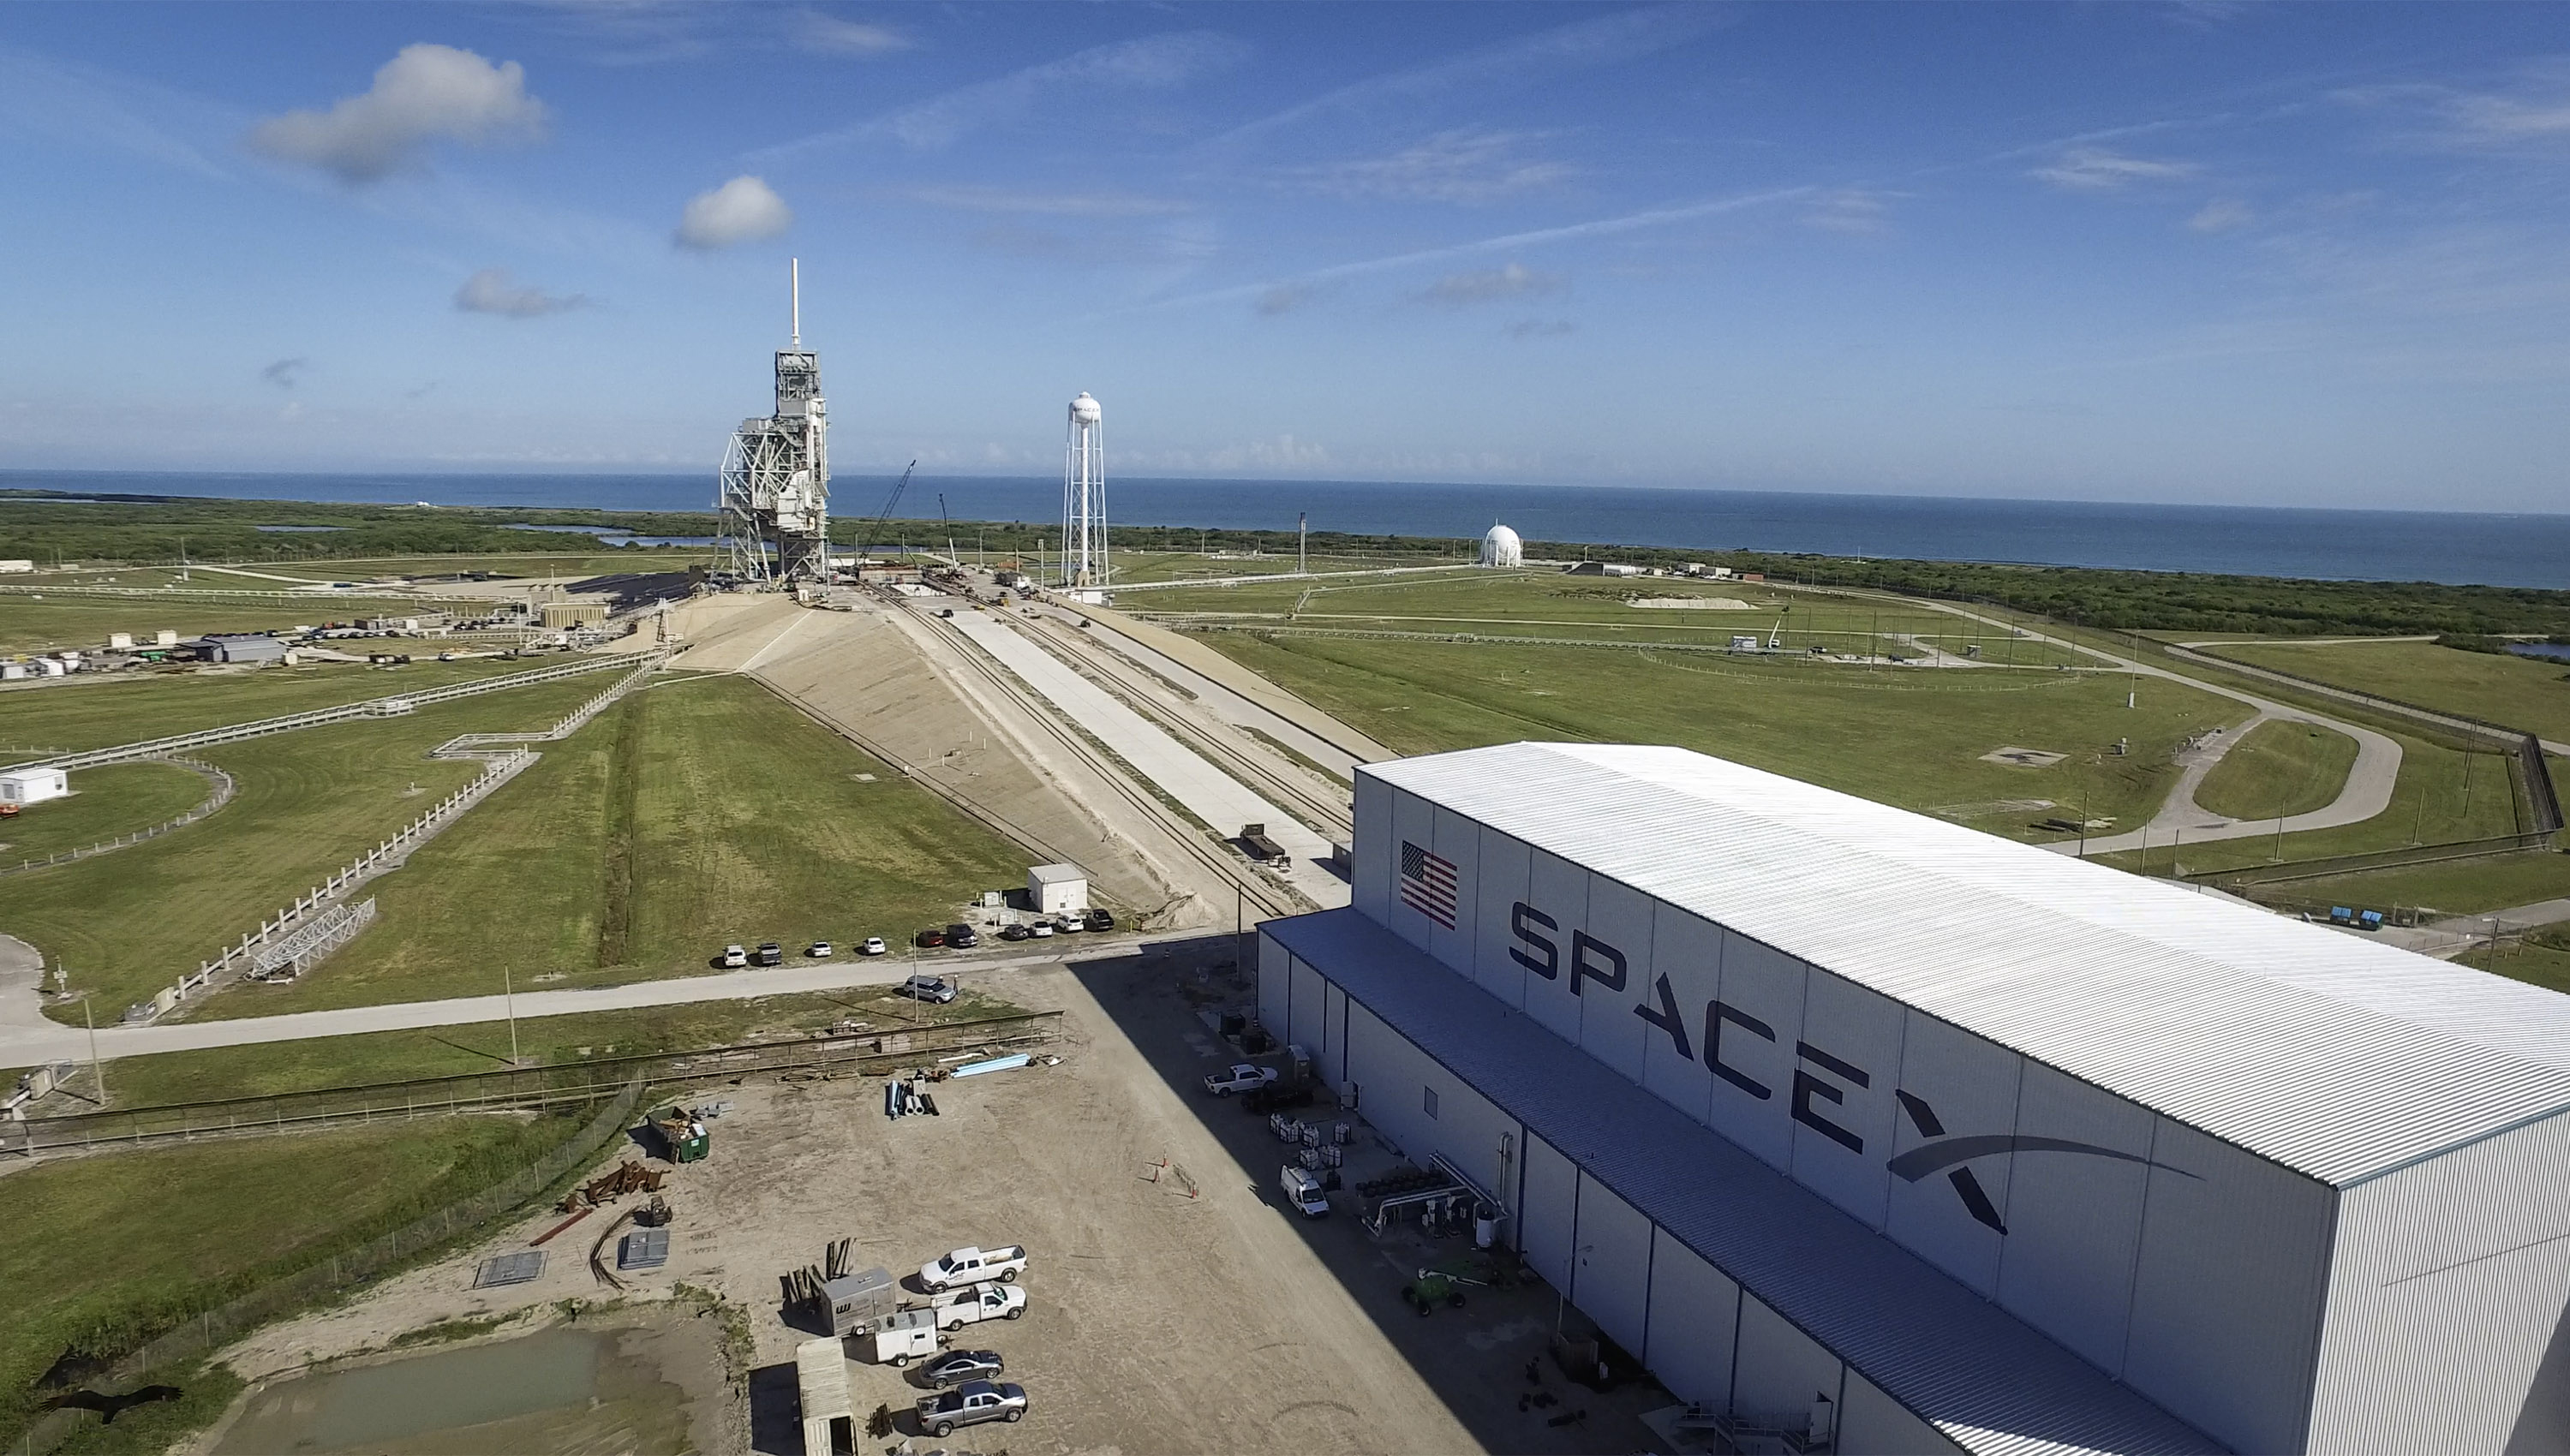 SpaceX Targets Jan. 30 for 1st Launch from Historic NASA Pad